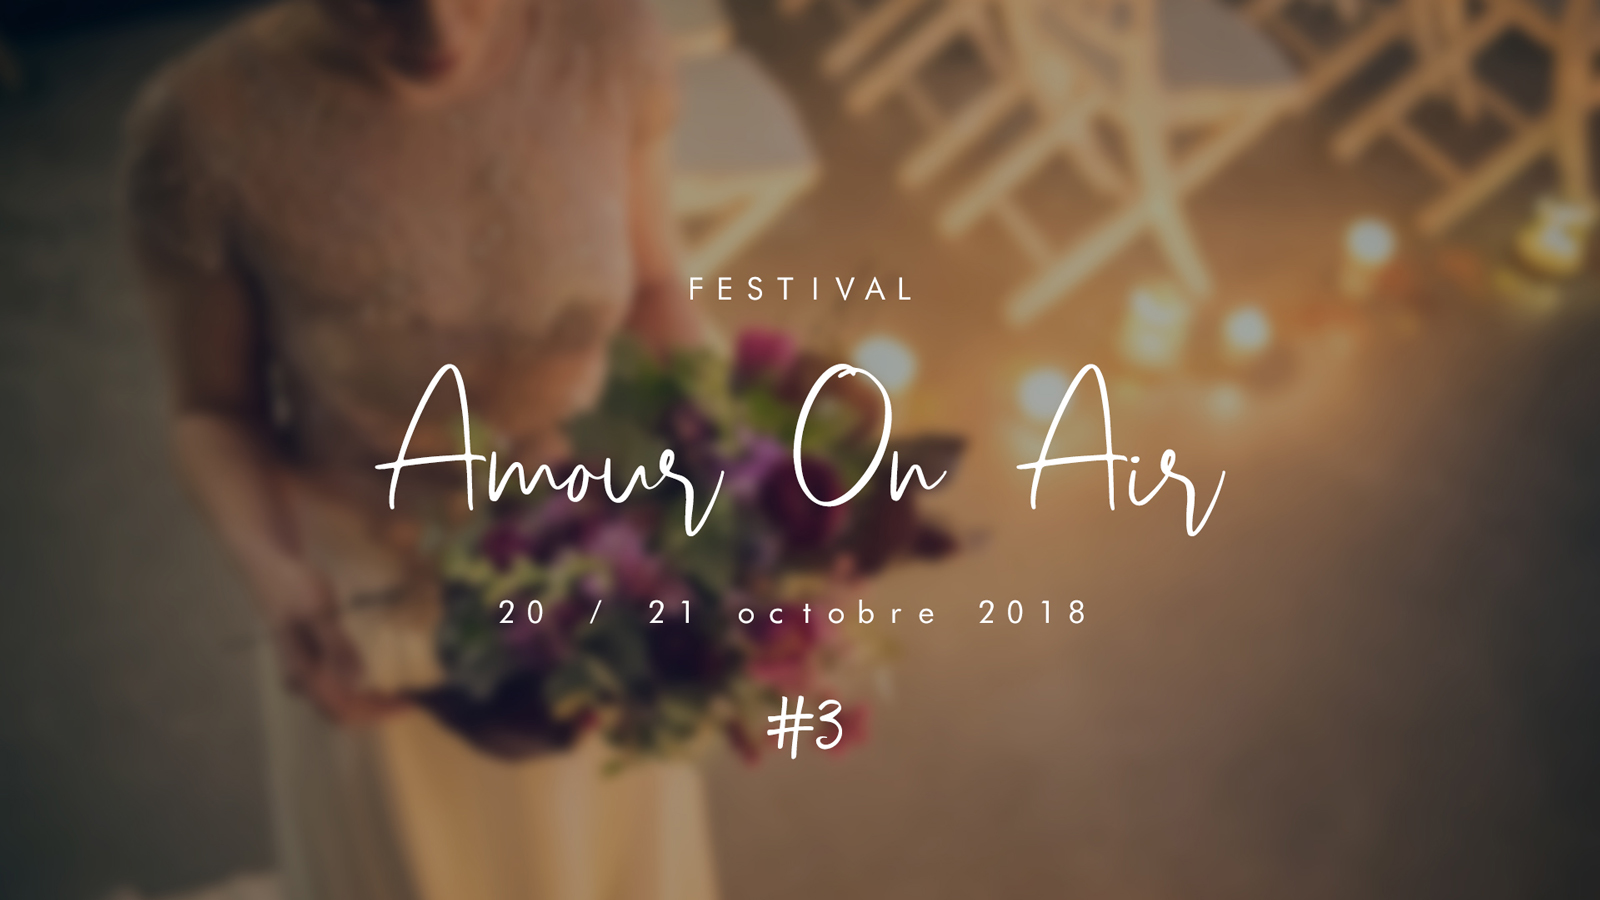 Festival du mariage AMOUR ON AIR - Edition 2018